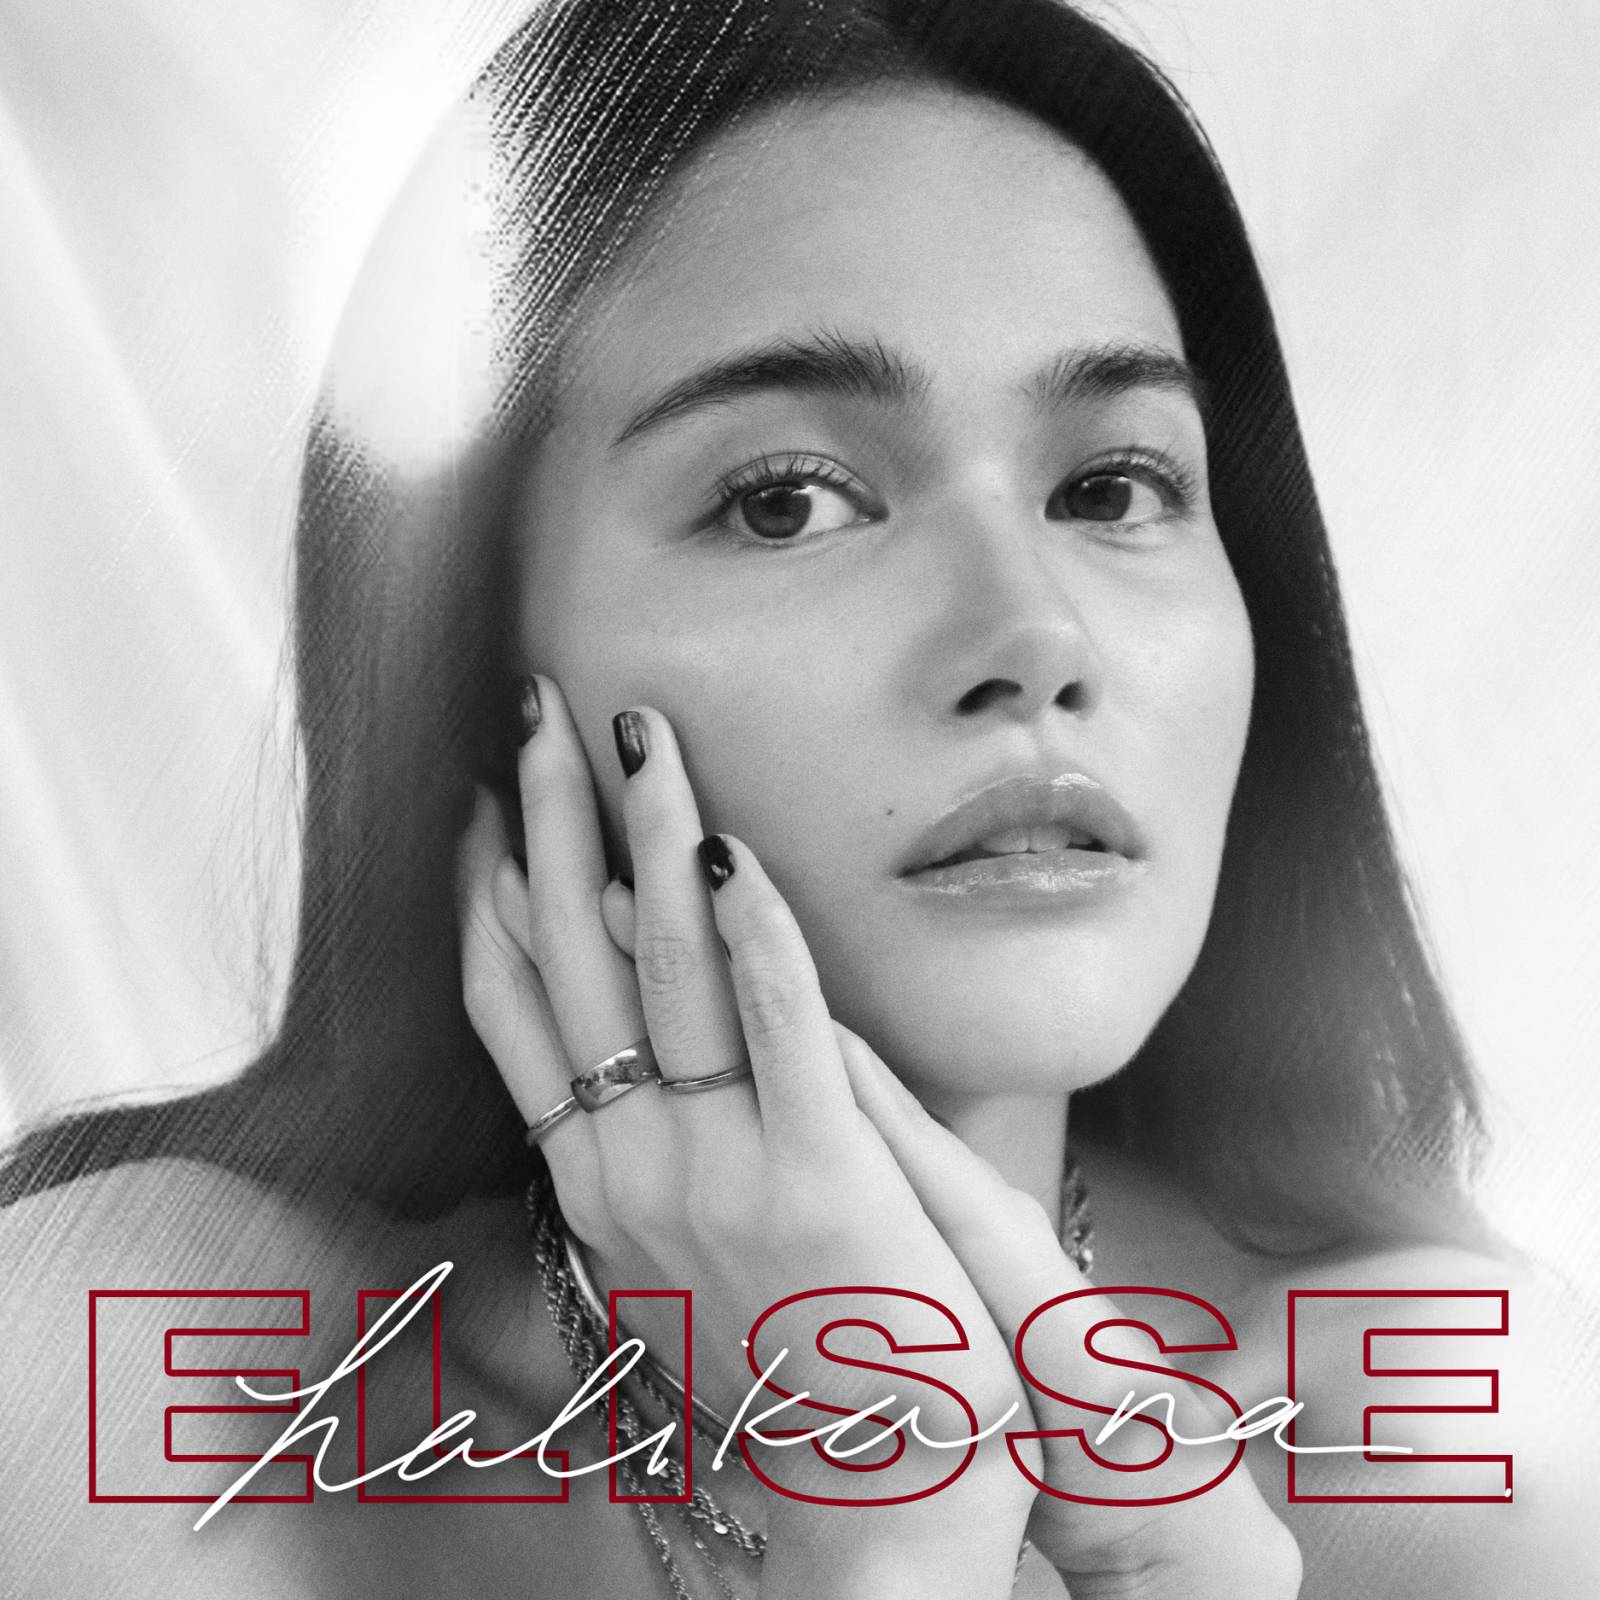 Elisse Joson channels Mature persona in her New Single